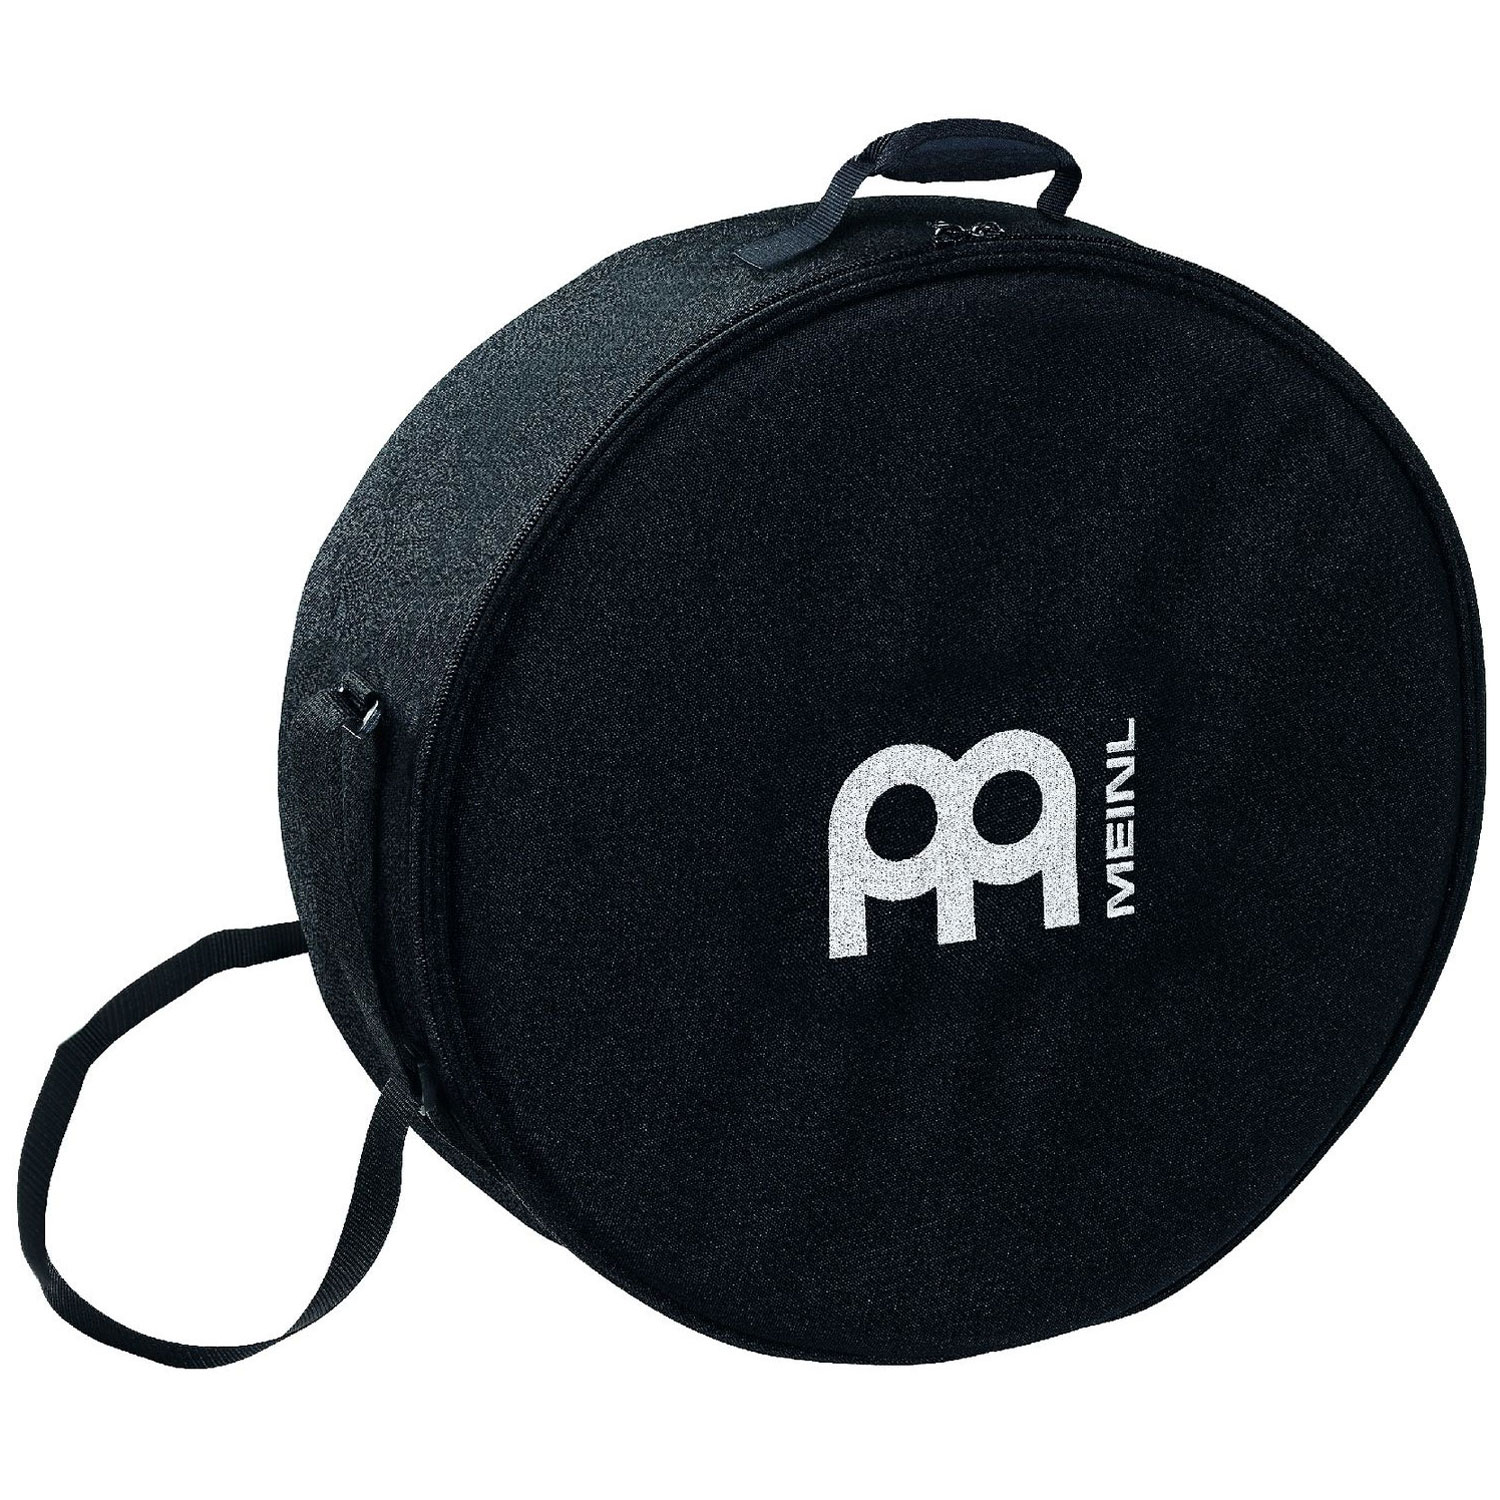 "Meinl 14"" (Diameter) x 2.5"" (Deep) Professional Frame Drum Bag"